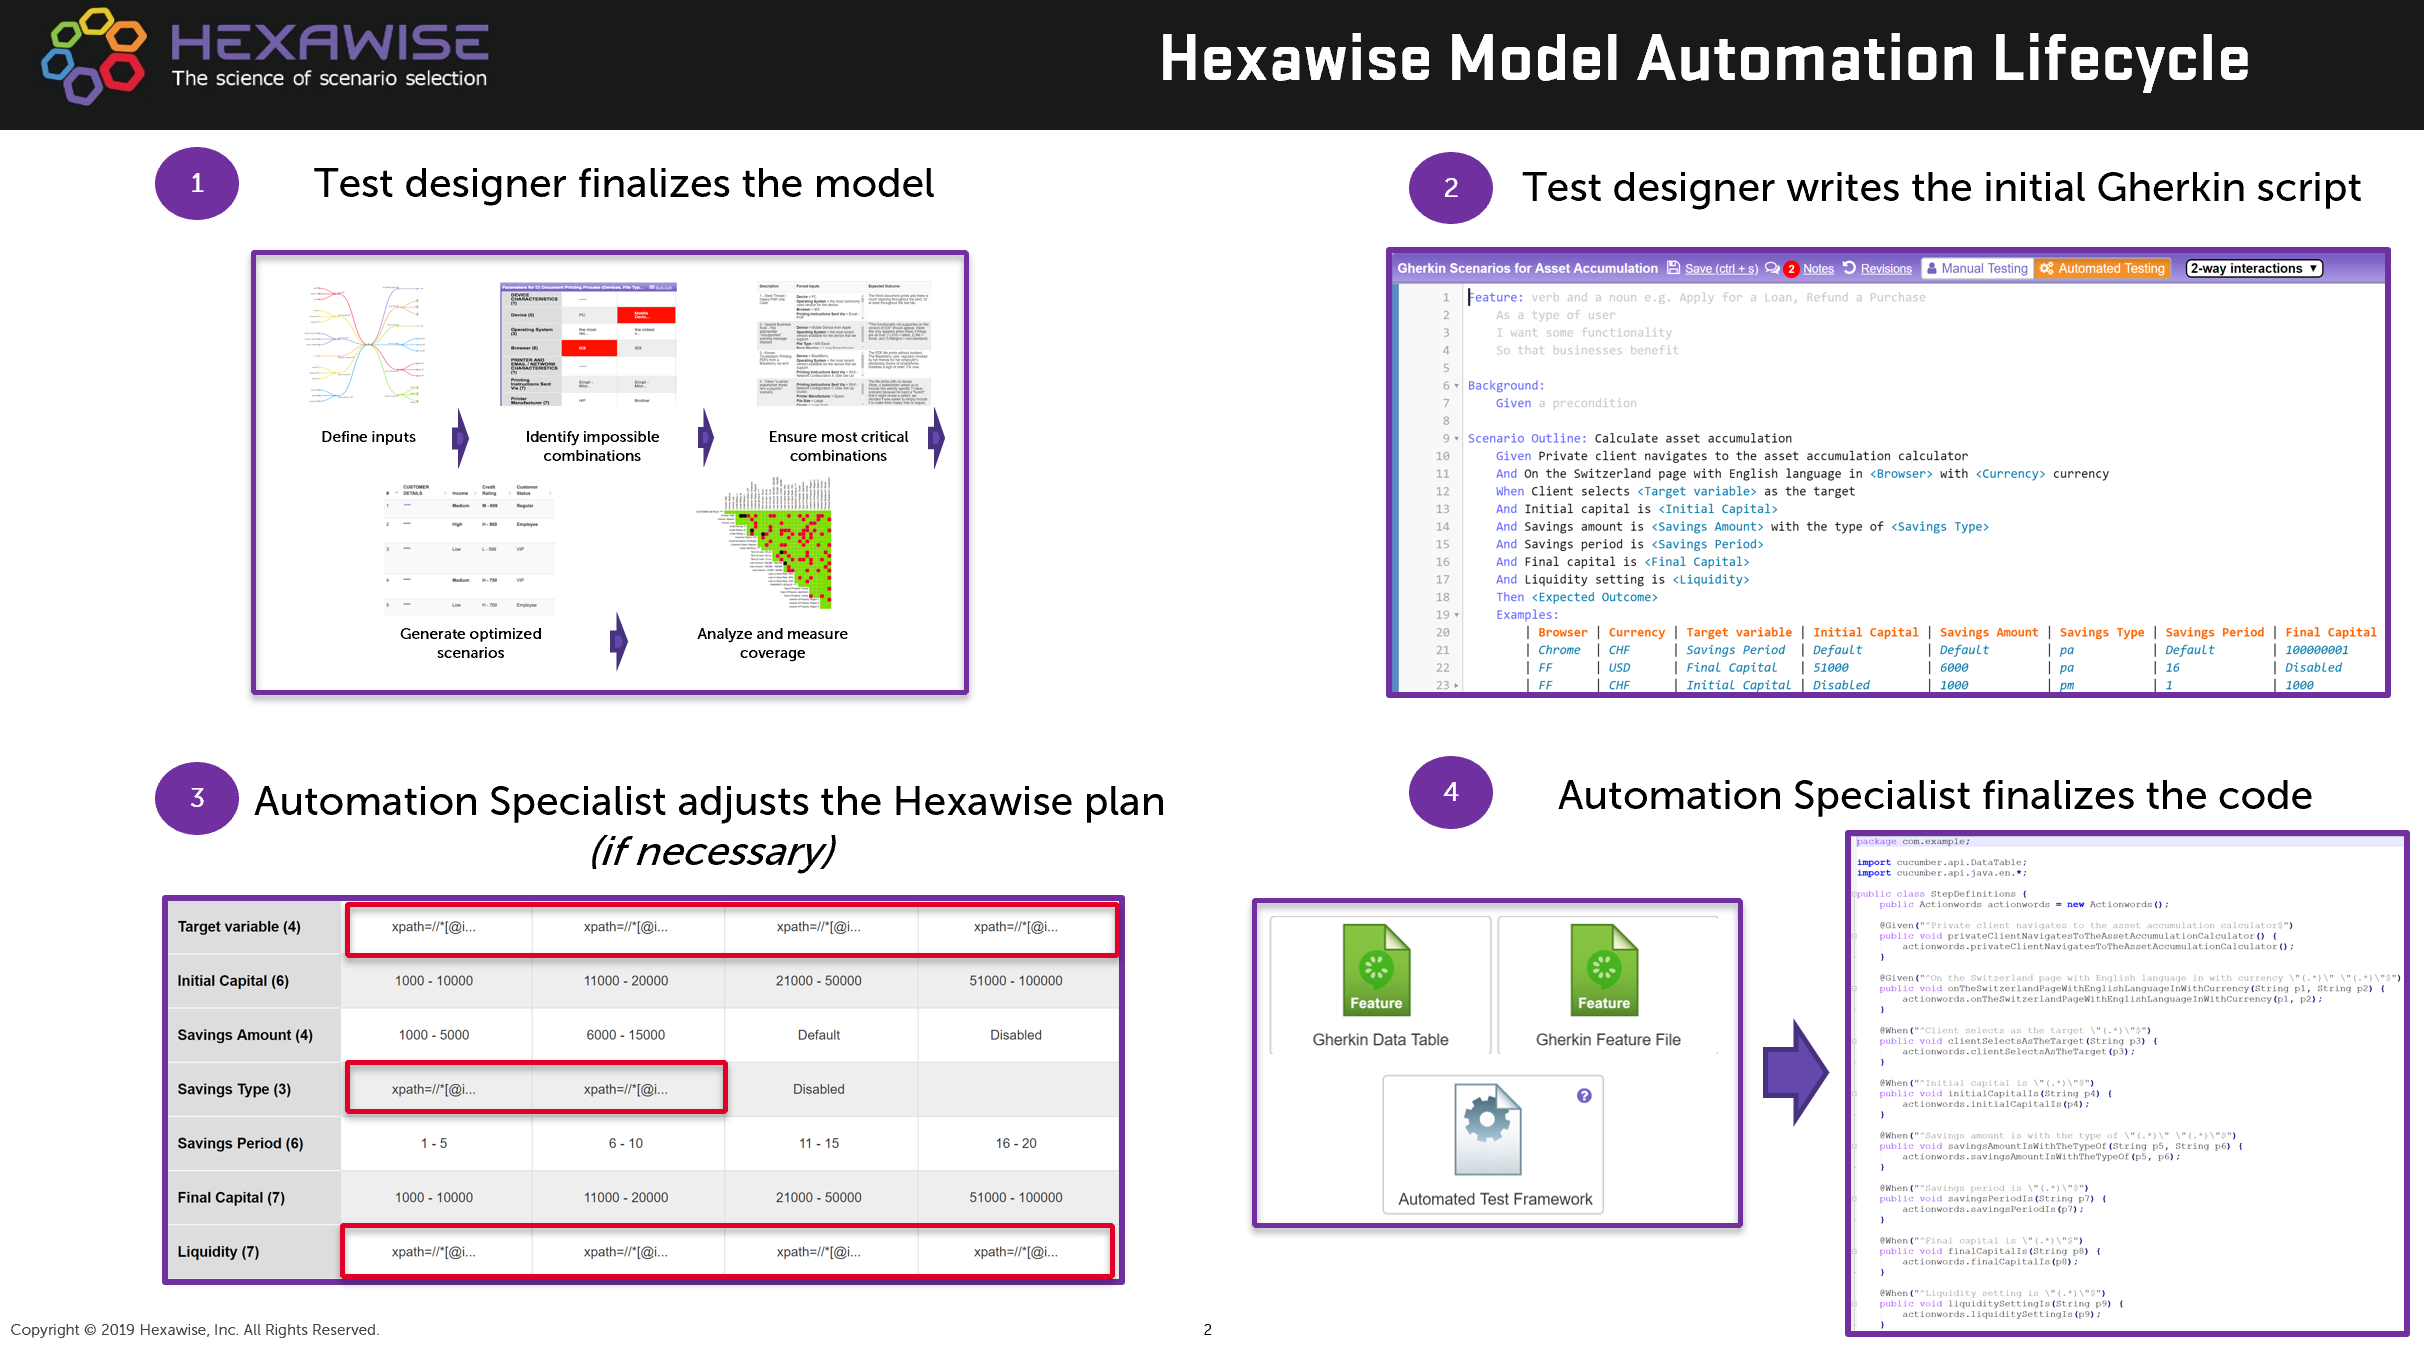 image showing Hexawise model automation lifecycle